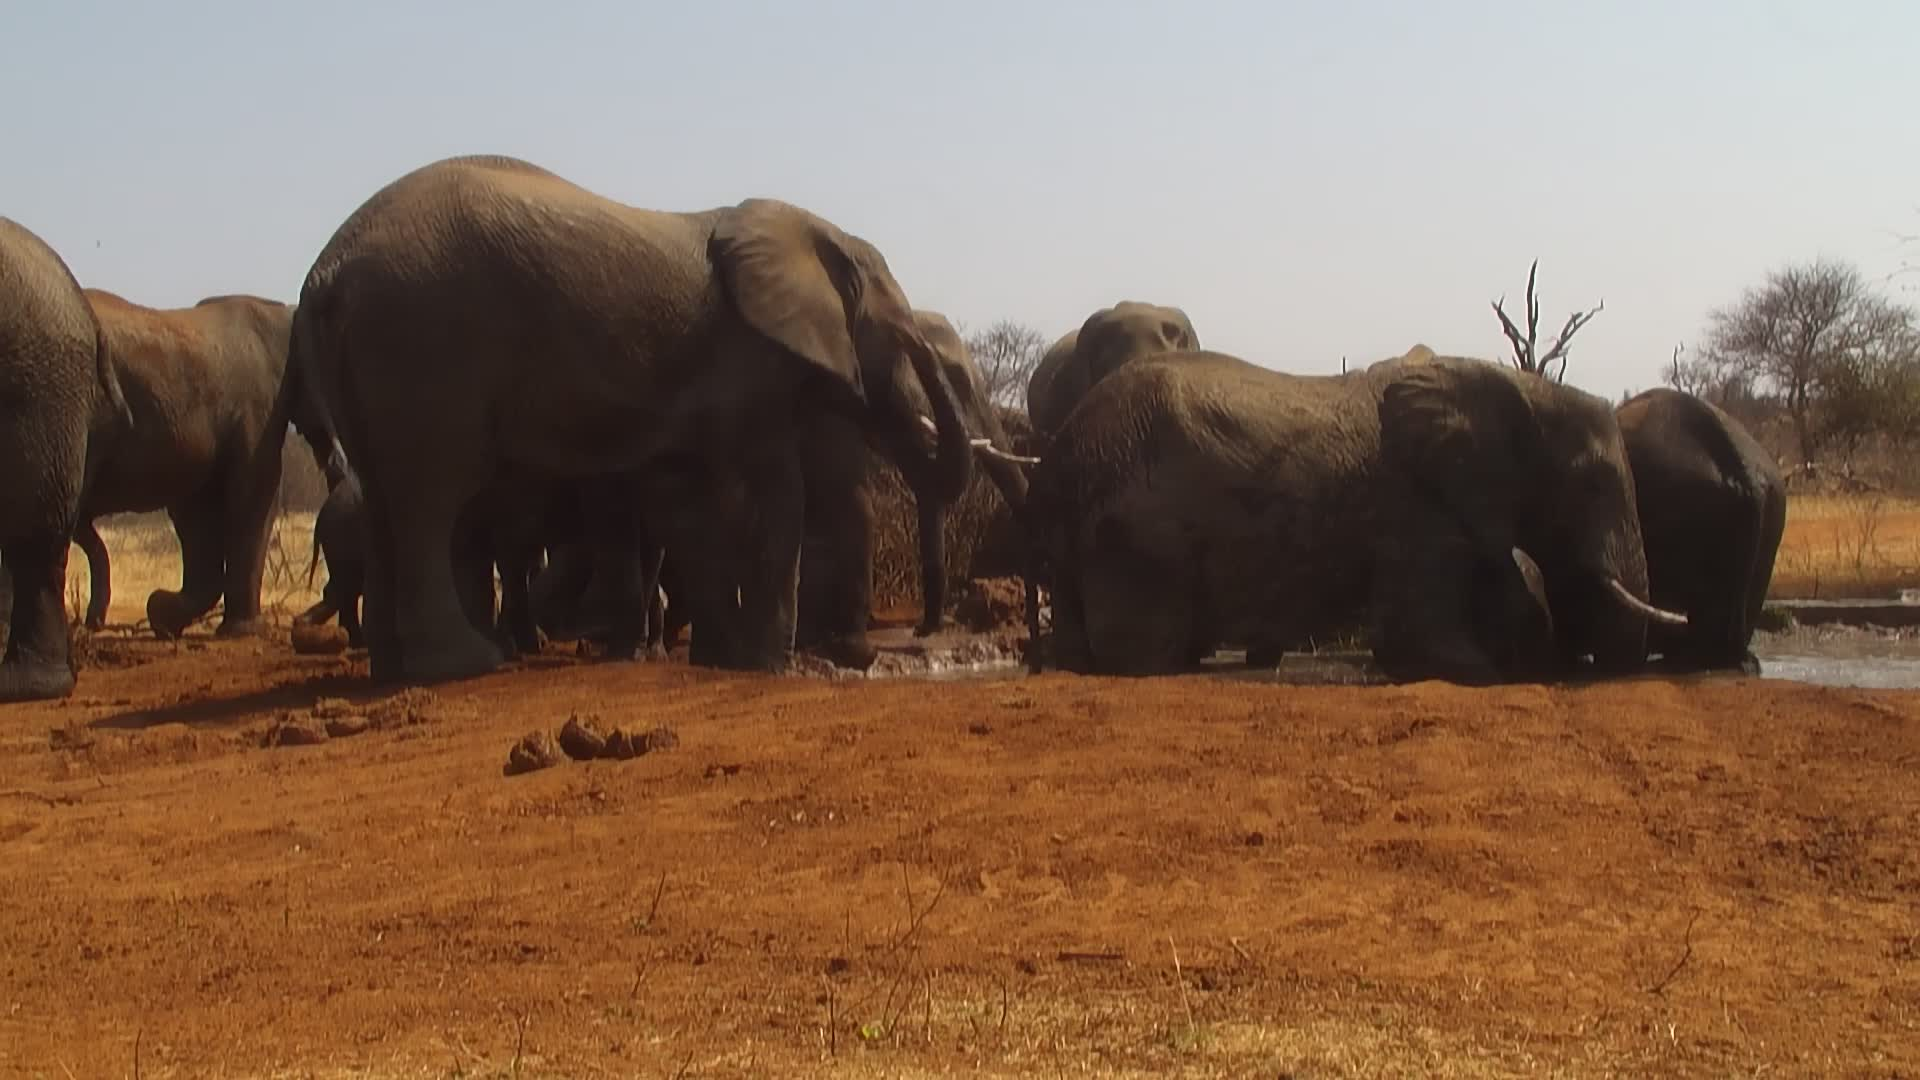 VIDEO: Elephant herd at the waterhole